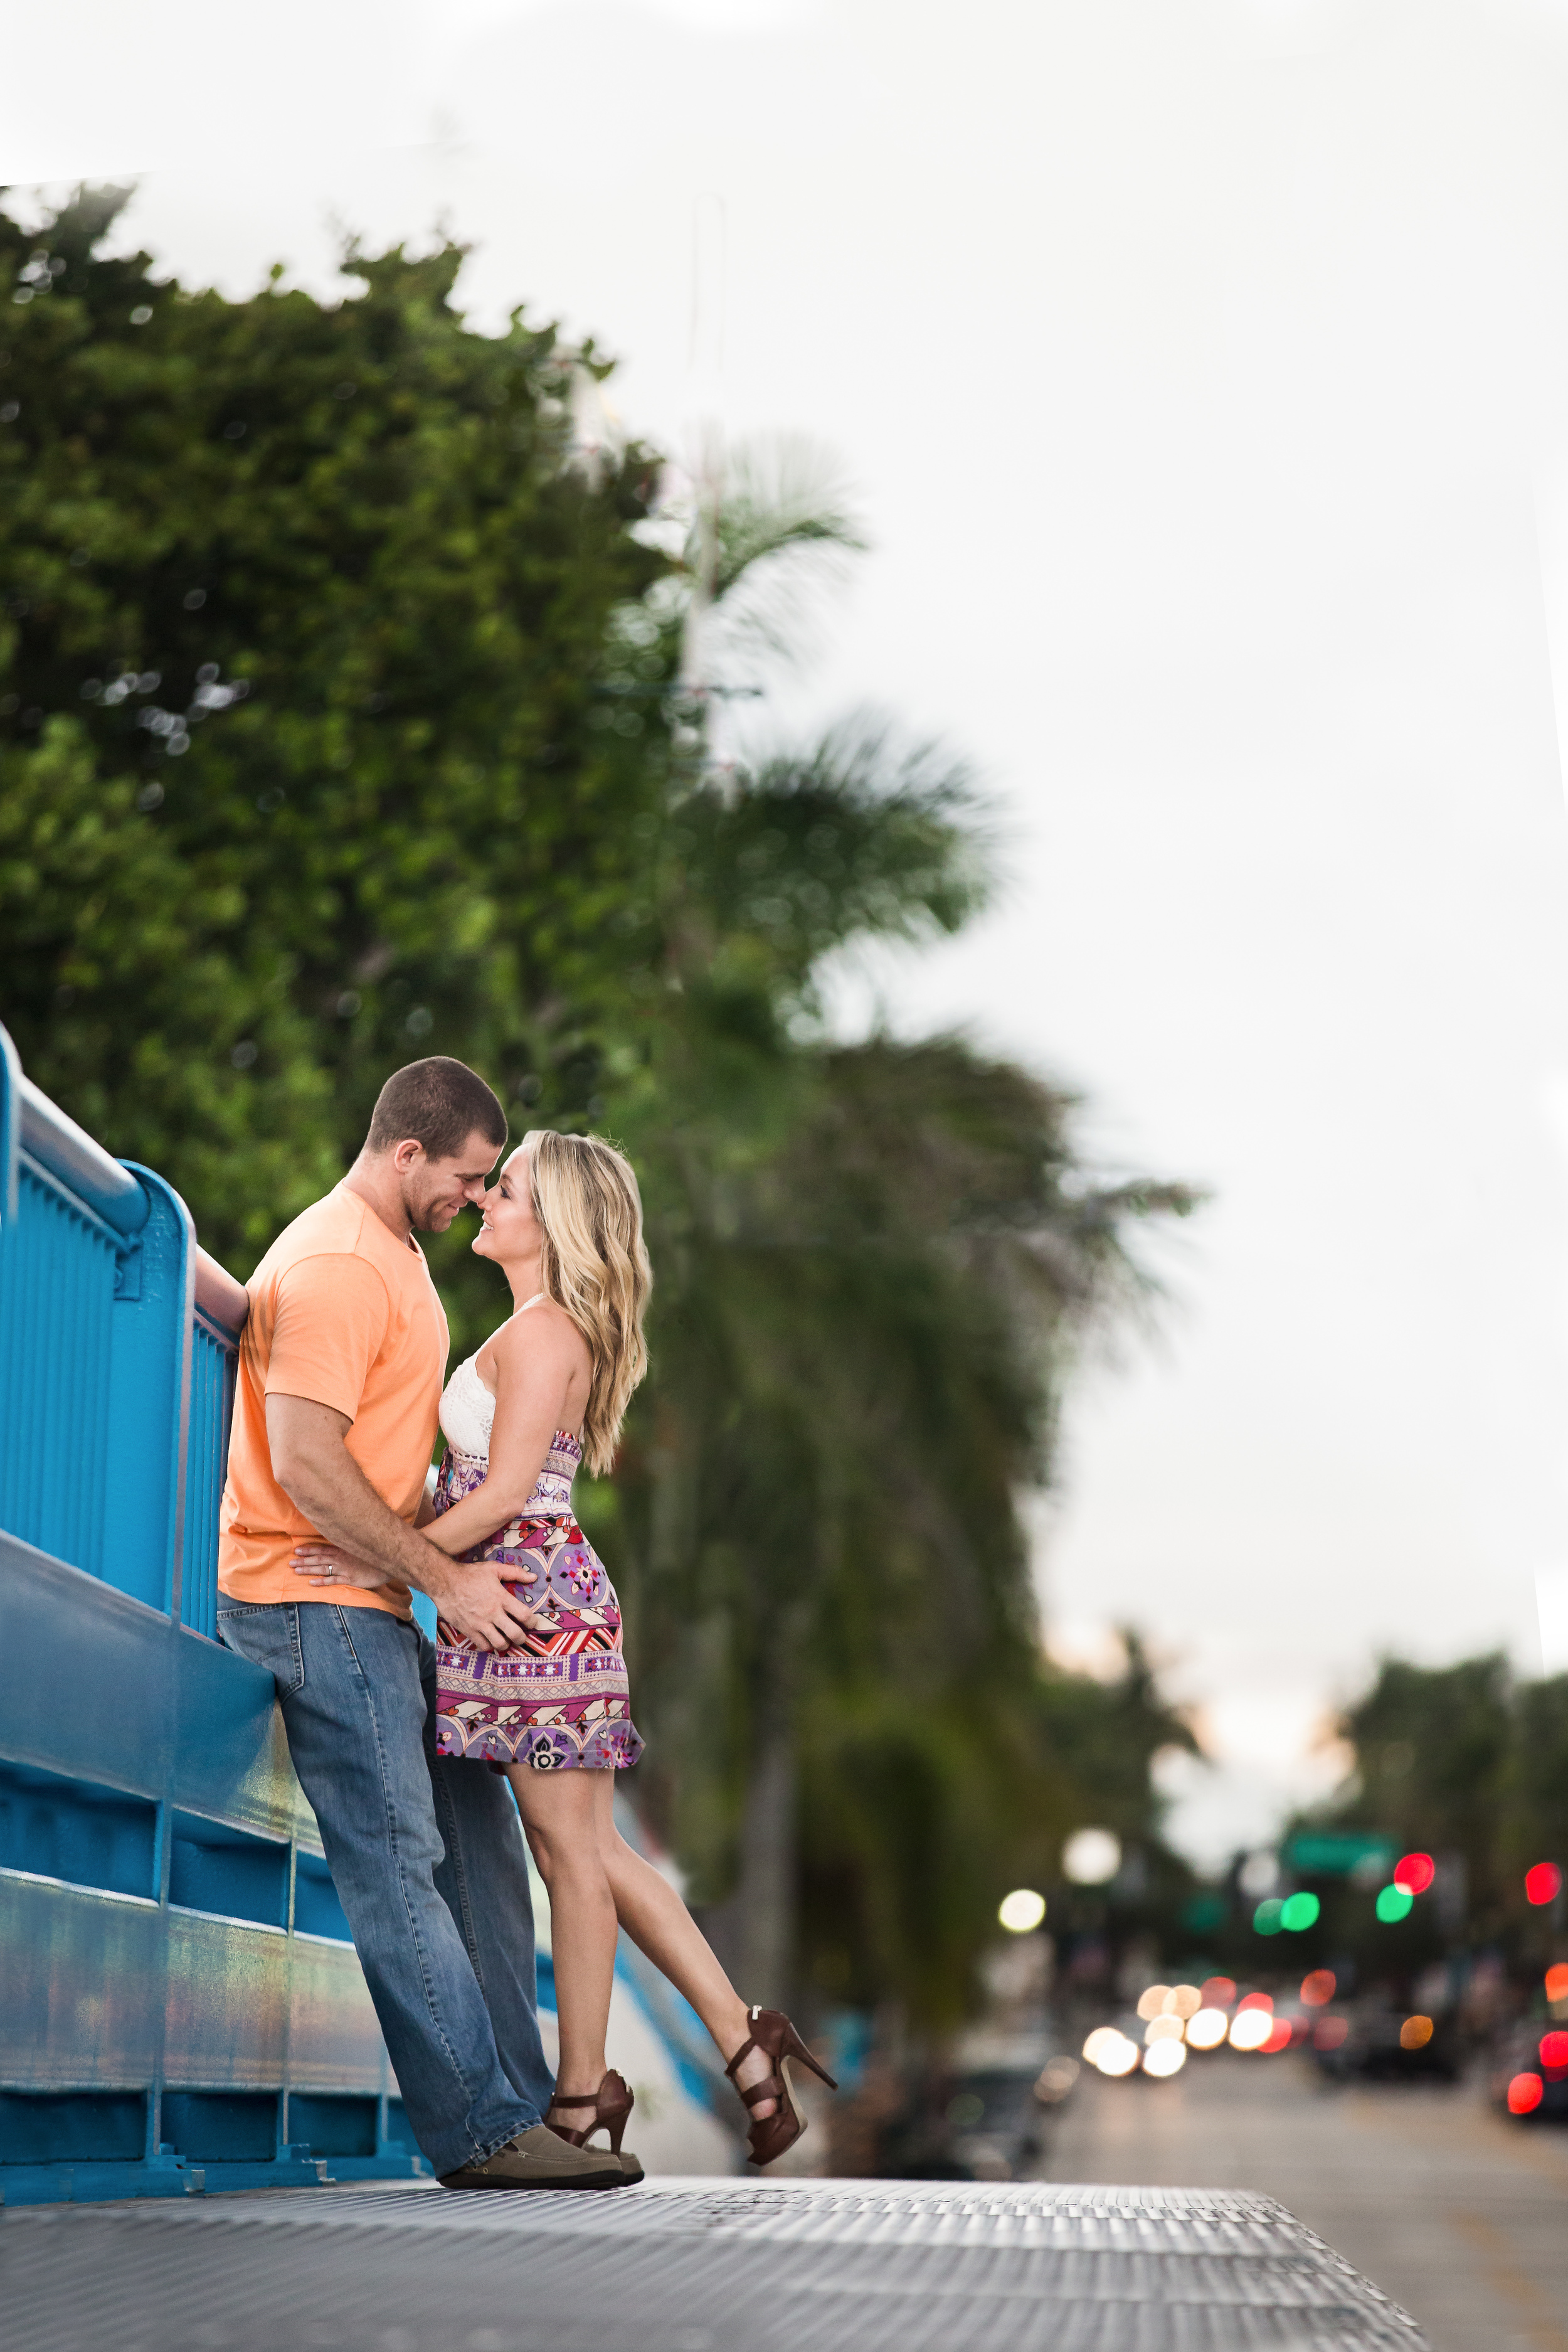 Sabrina and Mike E-session Delray 07.06.14-2161.jpg